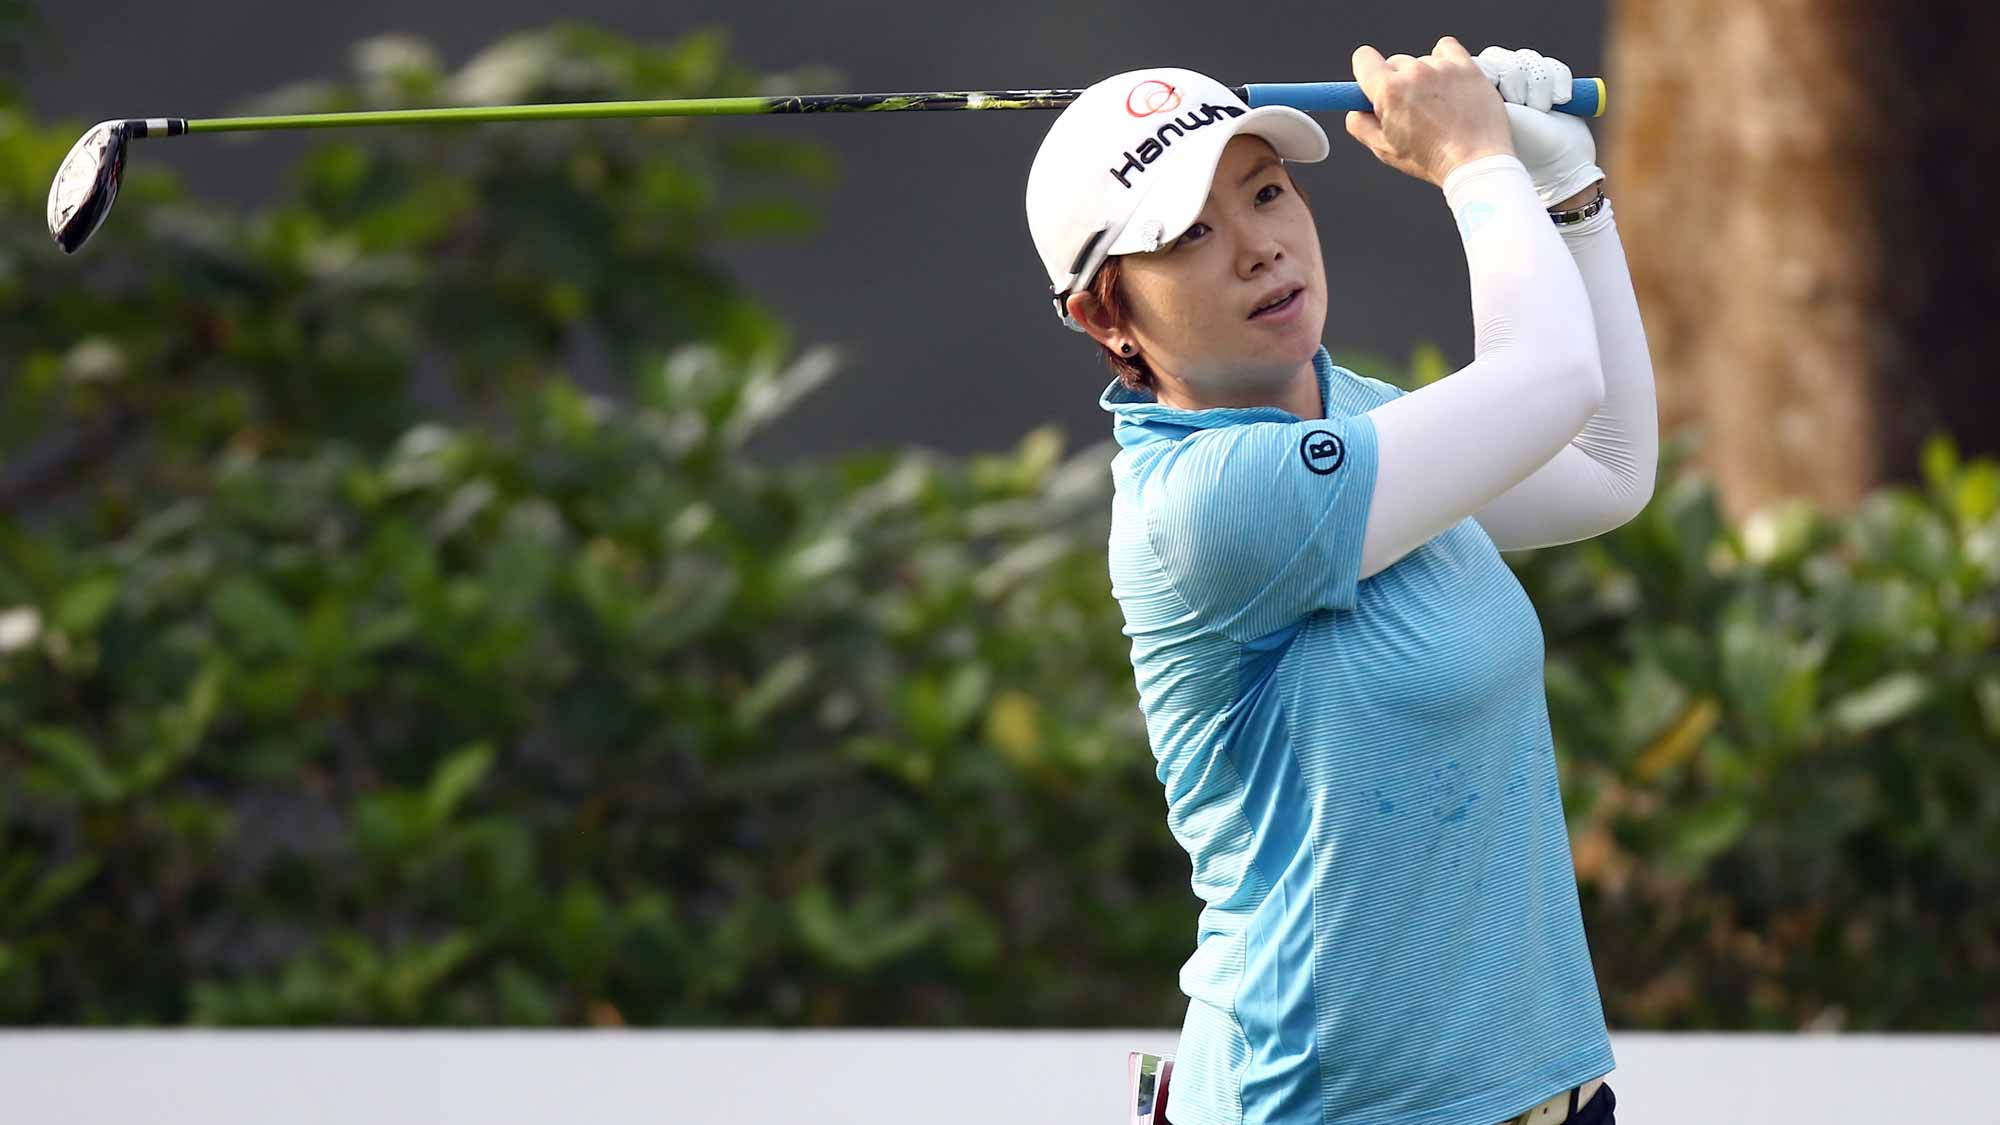 Eun-Hee Ji of South Korea plays her tee shot on the 4th hole during round one of the Sime Darby LPGA Tour at Kuala Lumpur Golf & Country Club